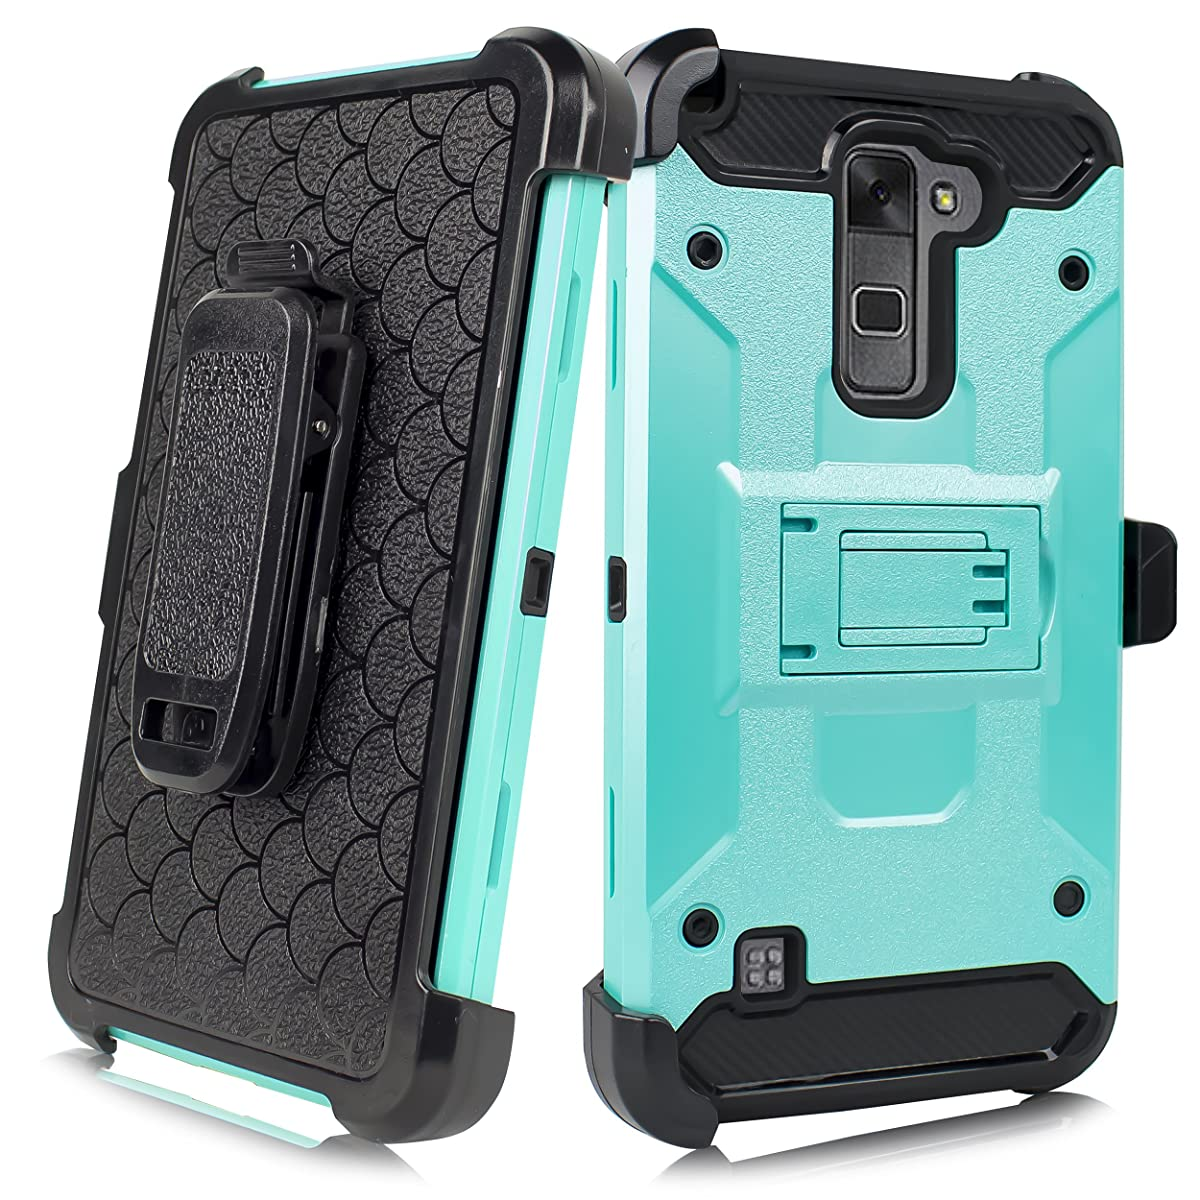 LG Stylo 2/ Stylus 2 LS775 5.7' (Boost Mobile, Virgin Mobile, Cricket) Duo Defense Drop-Proof Heavy Duty Full Body Rugged Holster Armor Combo Case [Belt Swivel Clip & Kickstand] (Teal)